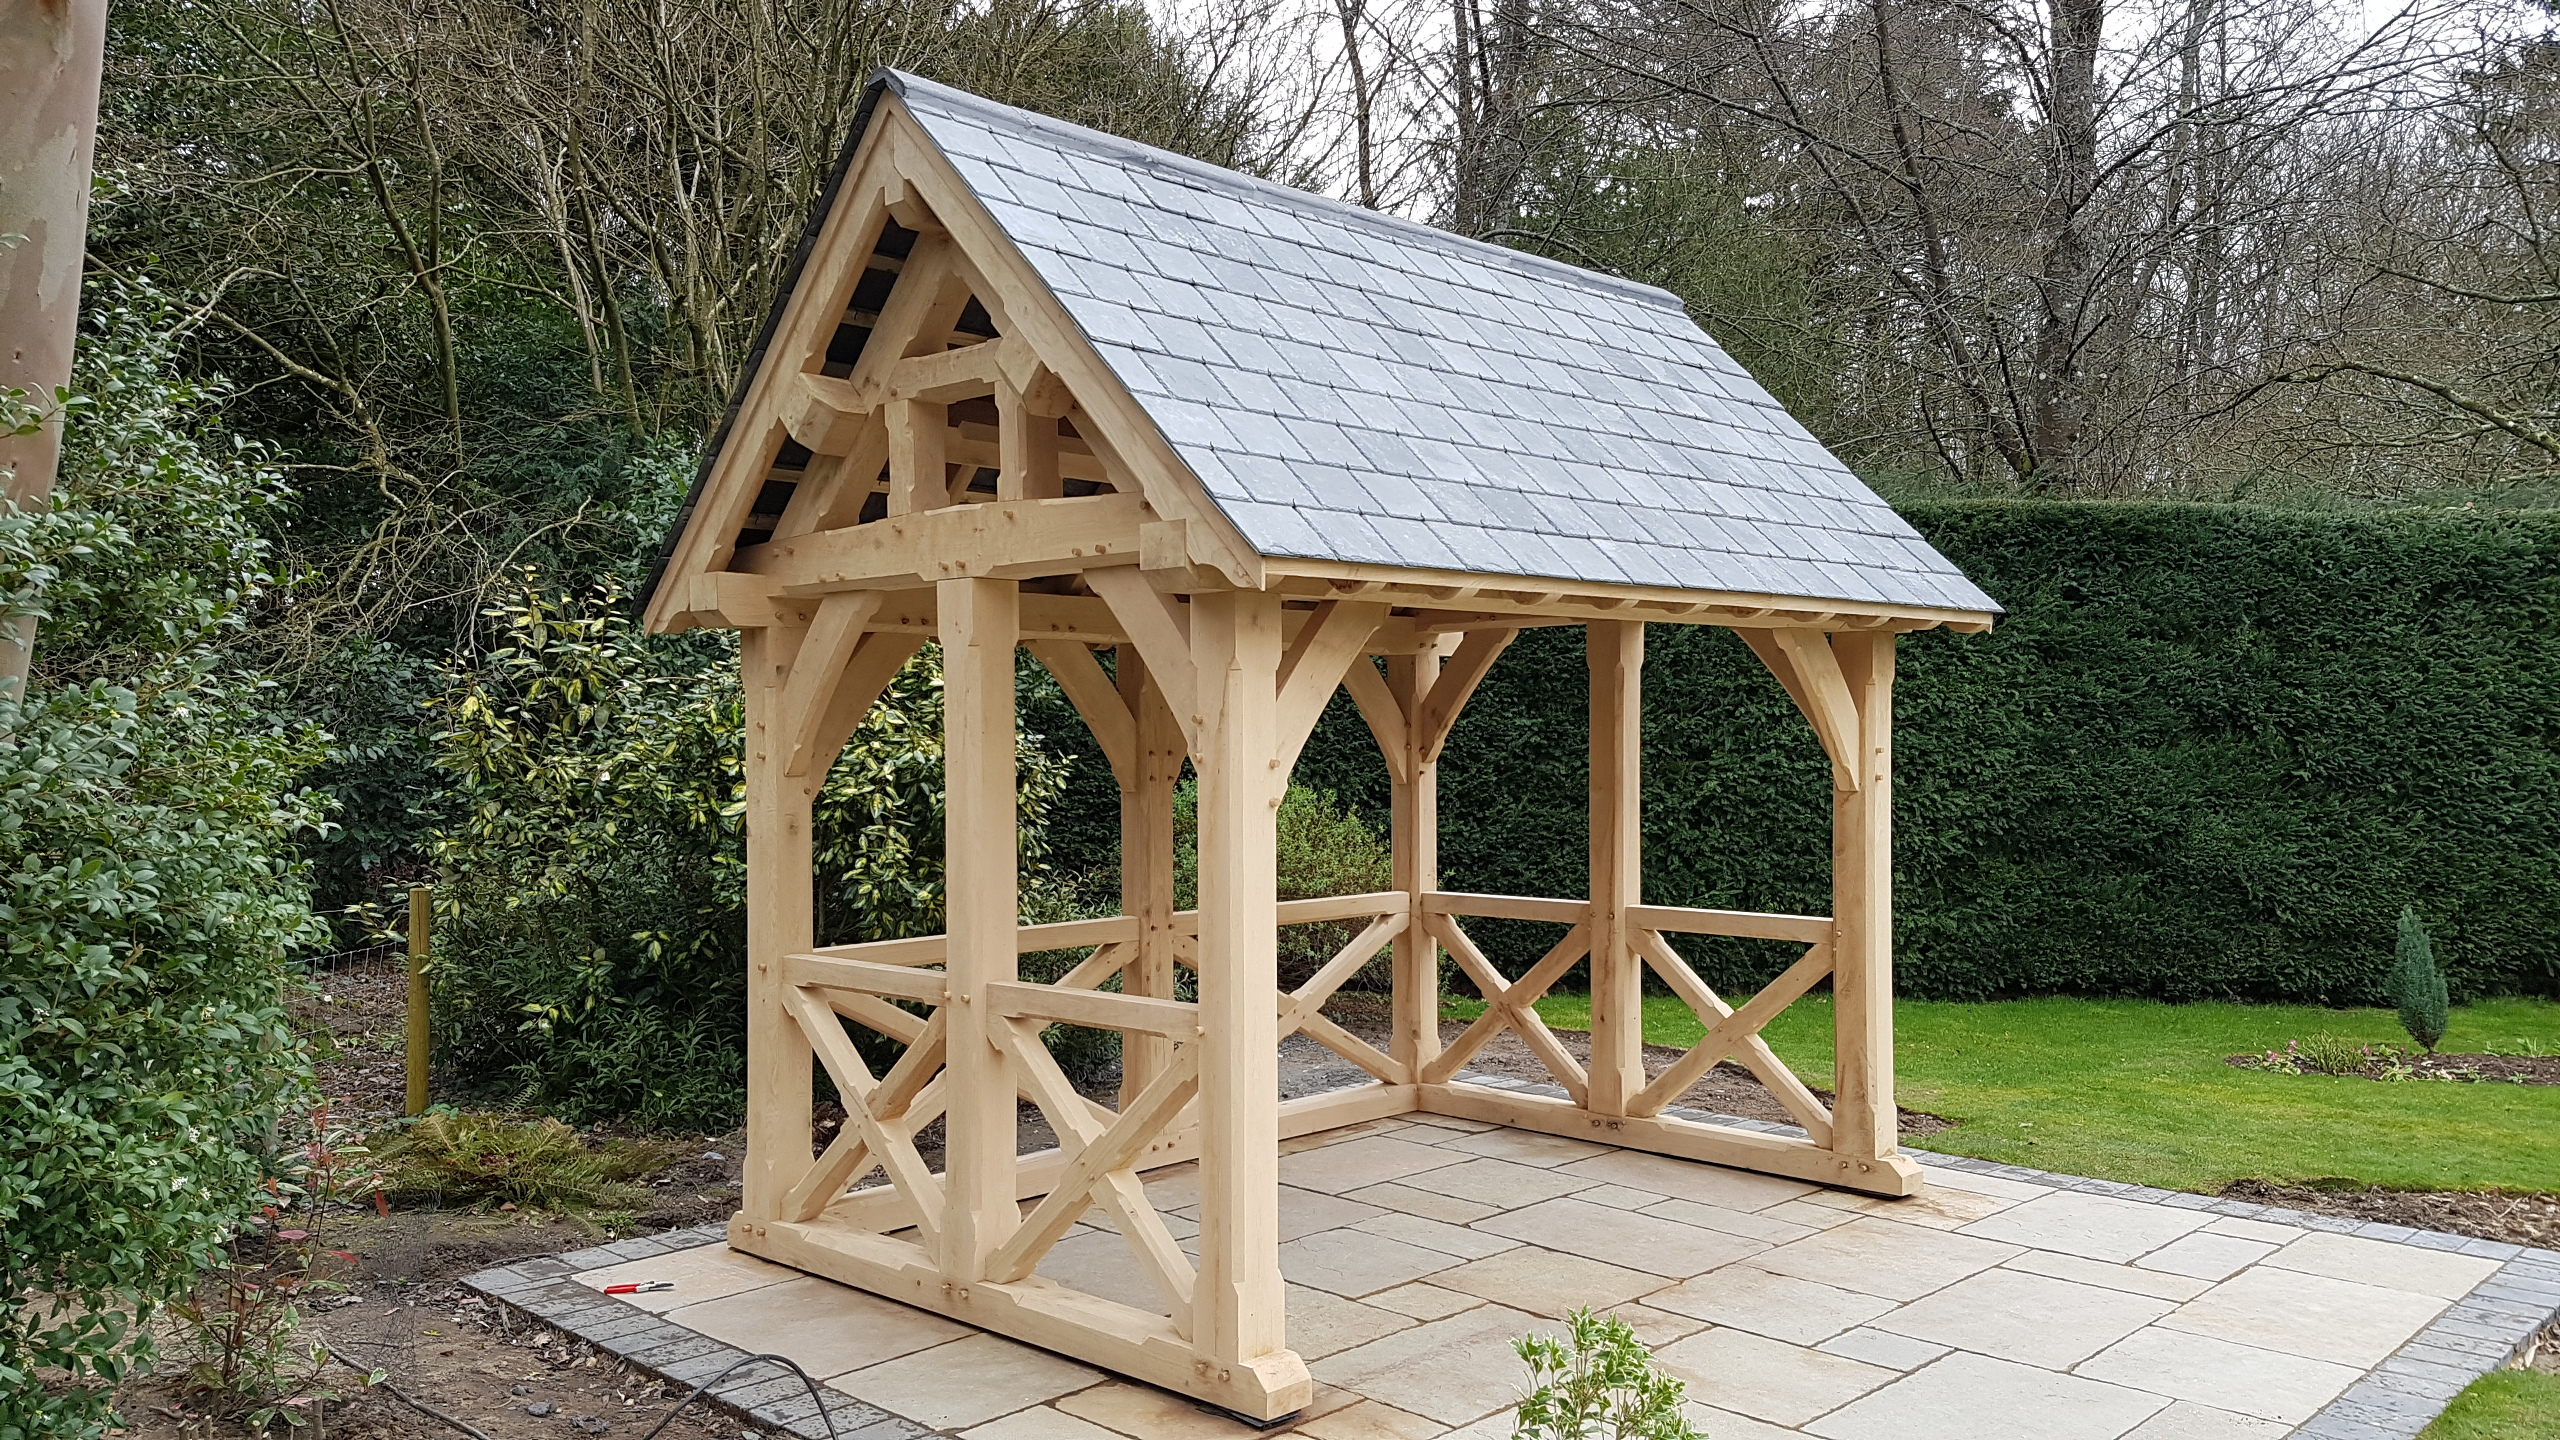 Oak Framed garden room with slate roof.